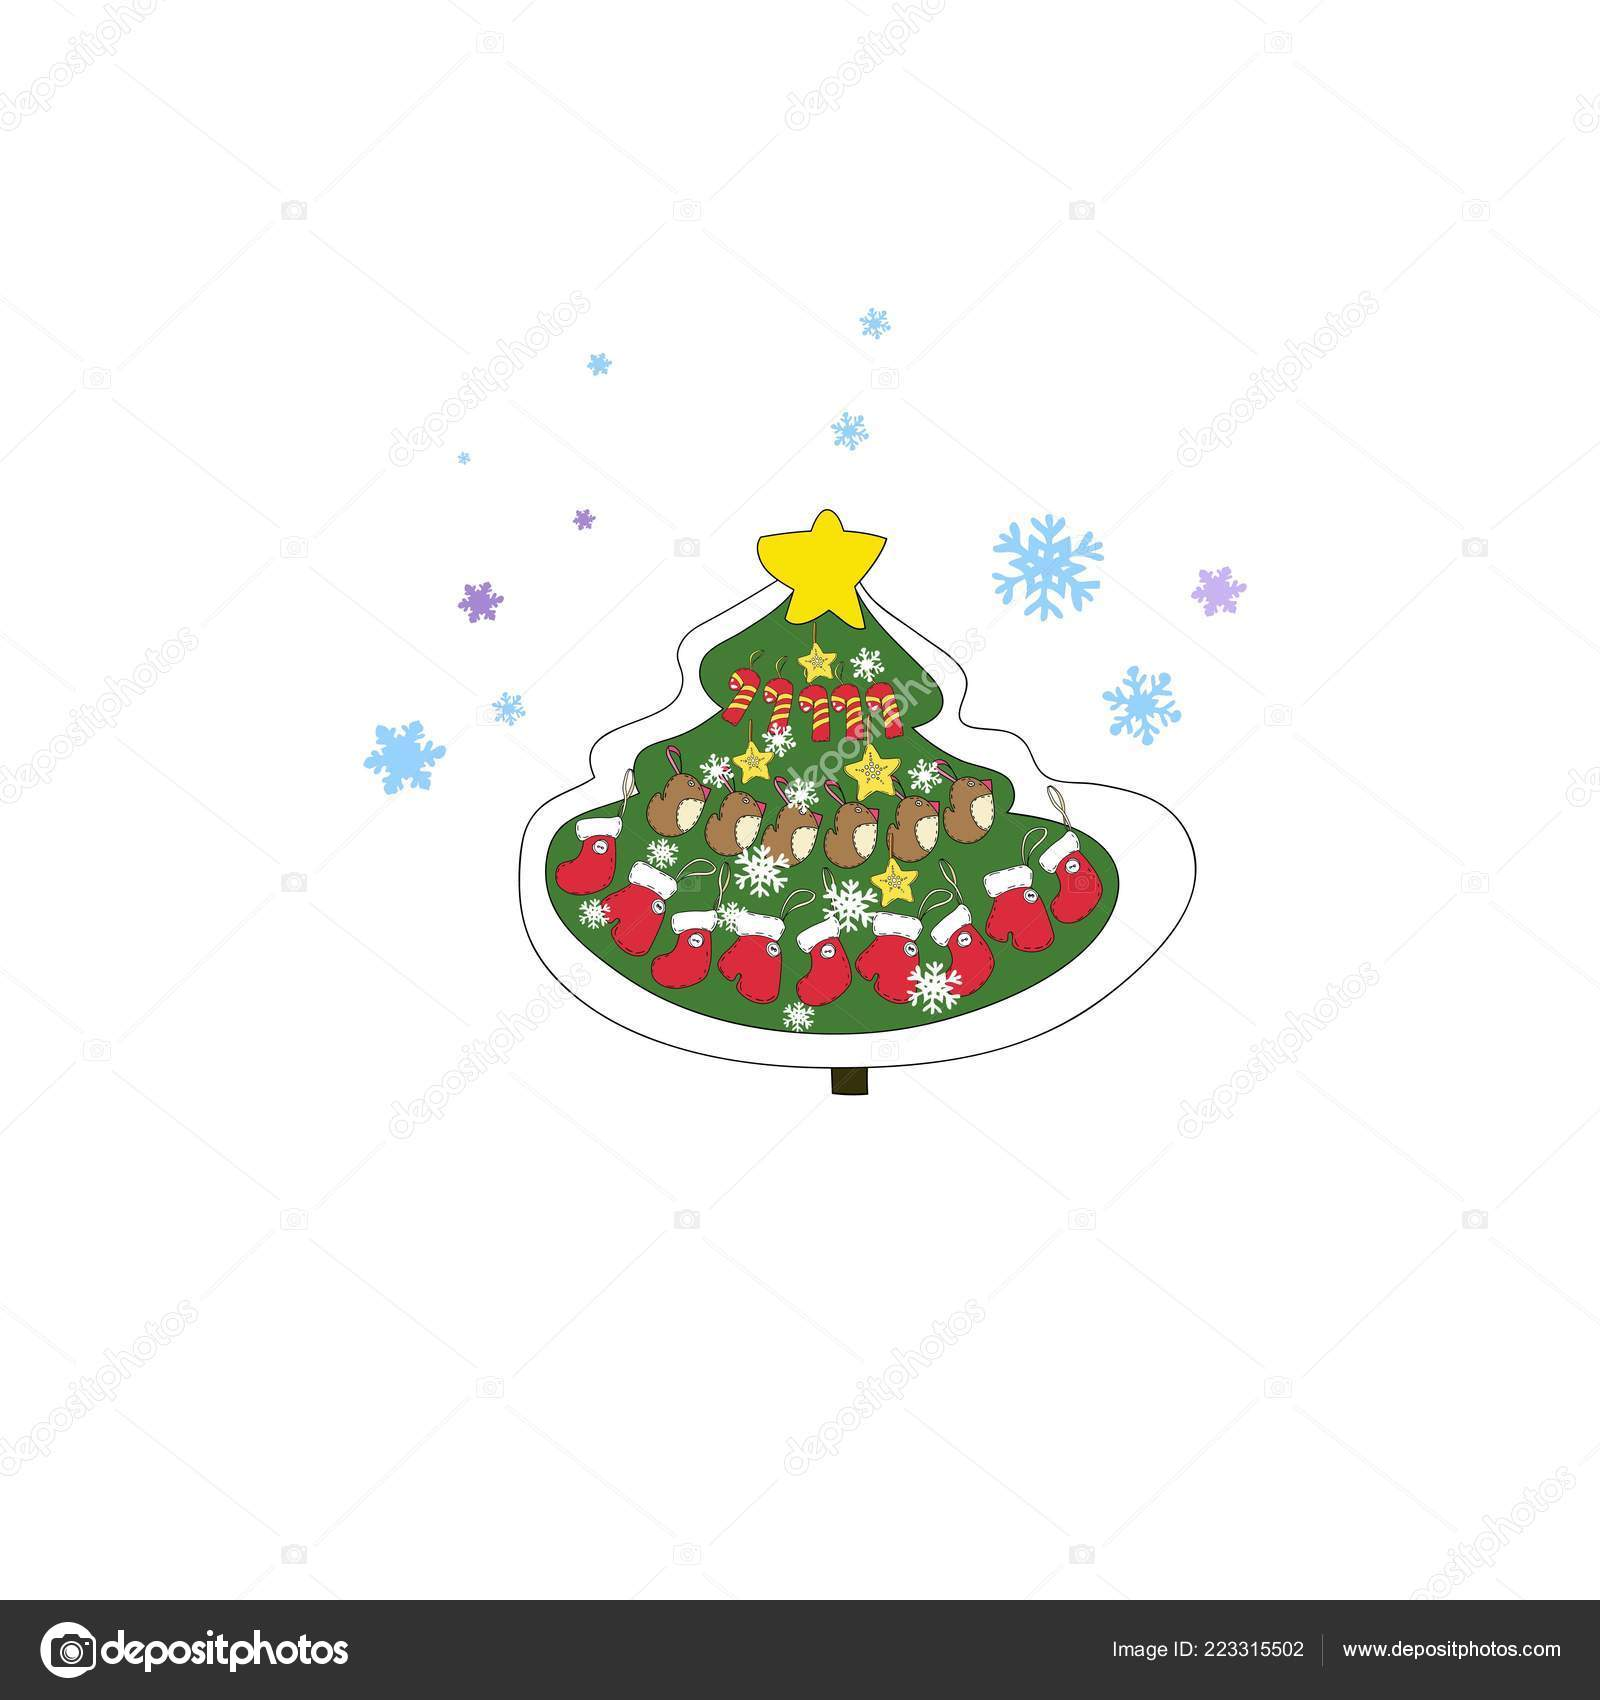 Drawings Of Christmas Decorations.Set New Year Christmas Drawings Vector Decoration Christmas